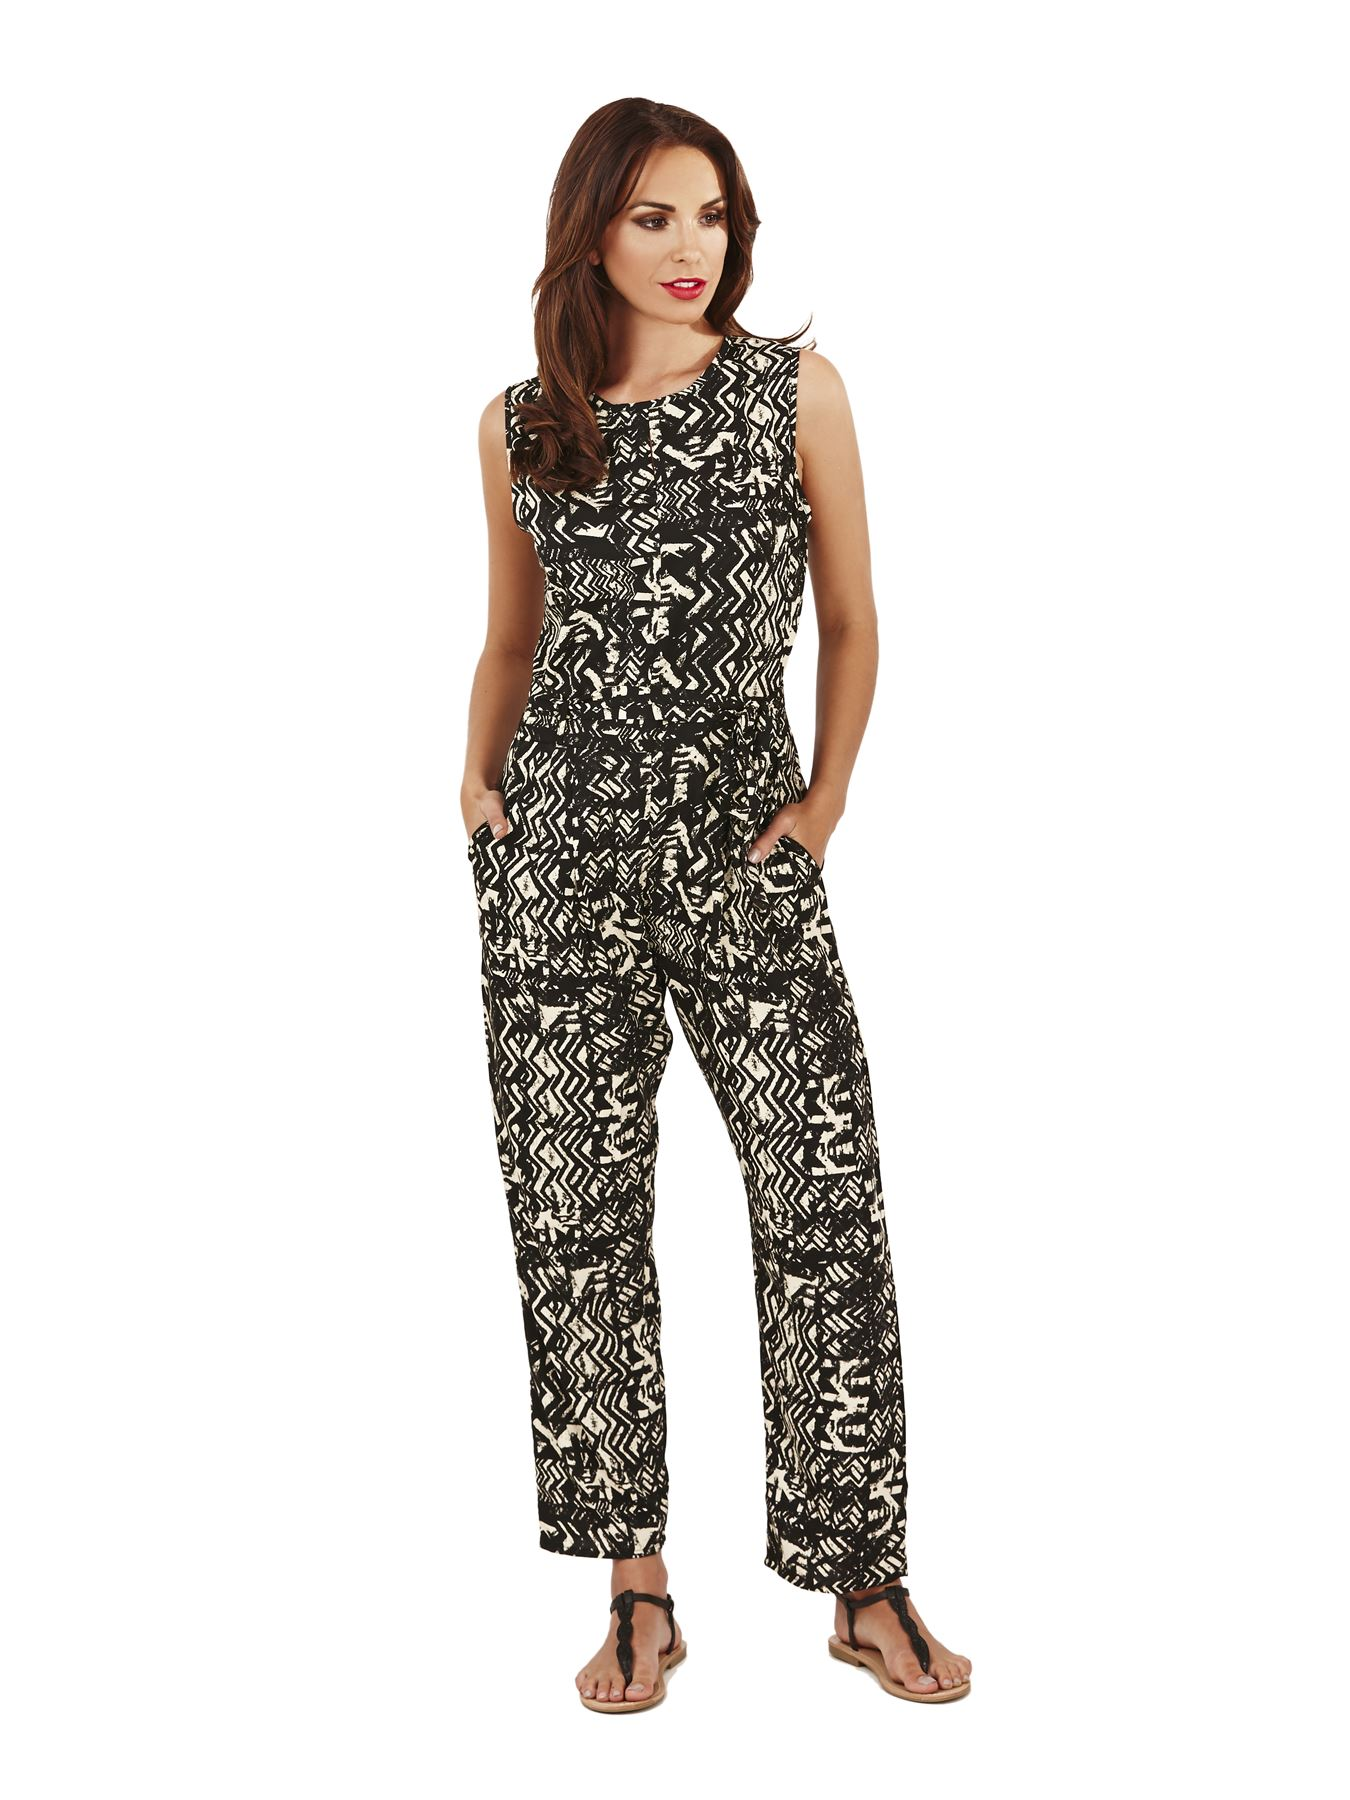 Wonderful Women Clubwear Sleeveless Playsuit Ladies Bodycon Party Jumpsuitu0026Romper Trousers | EBay